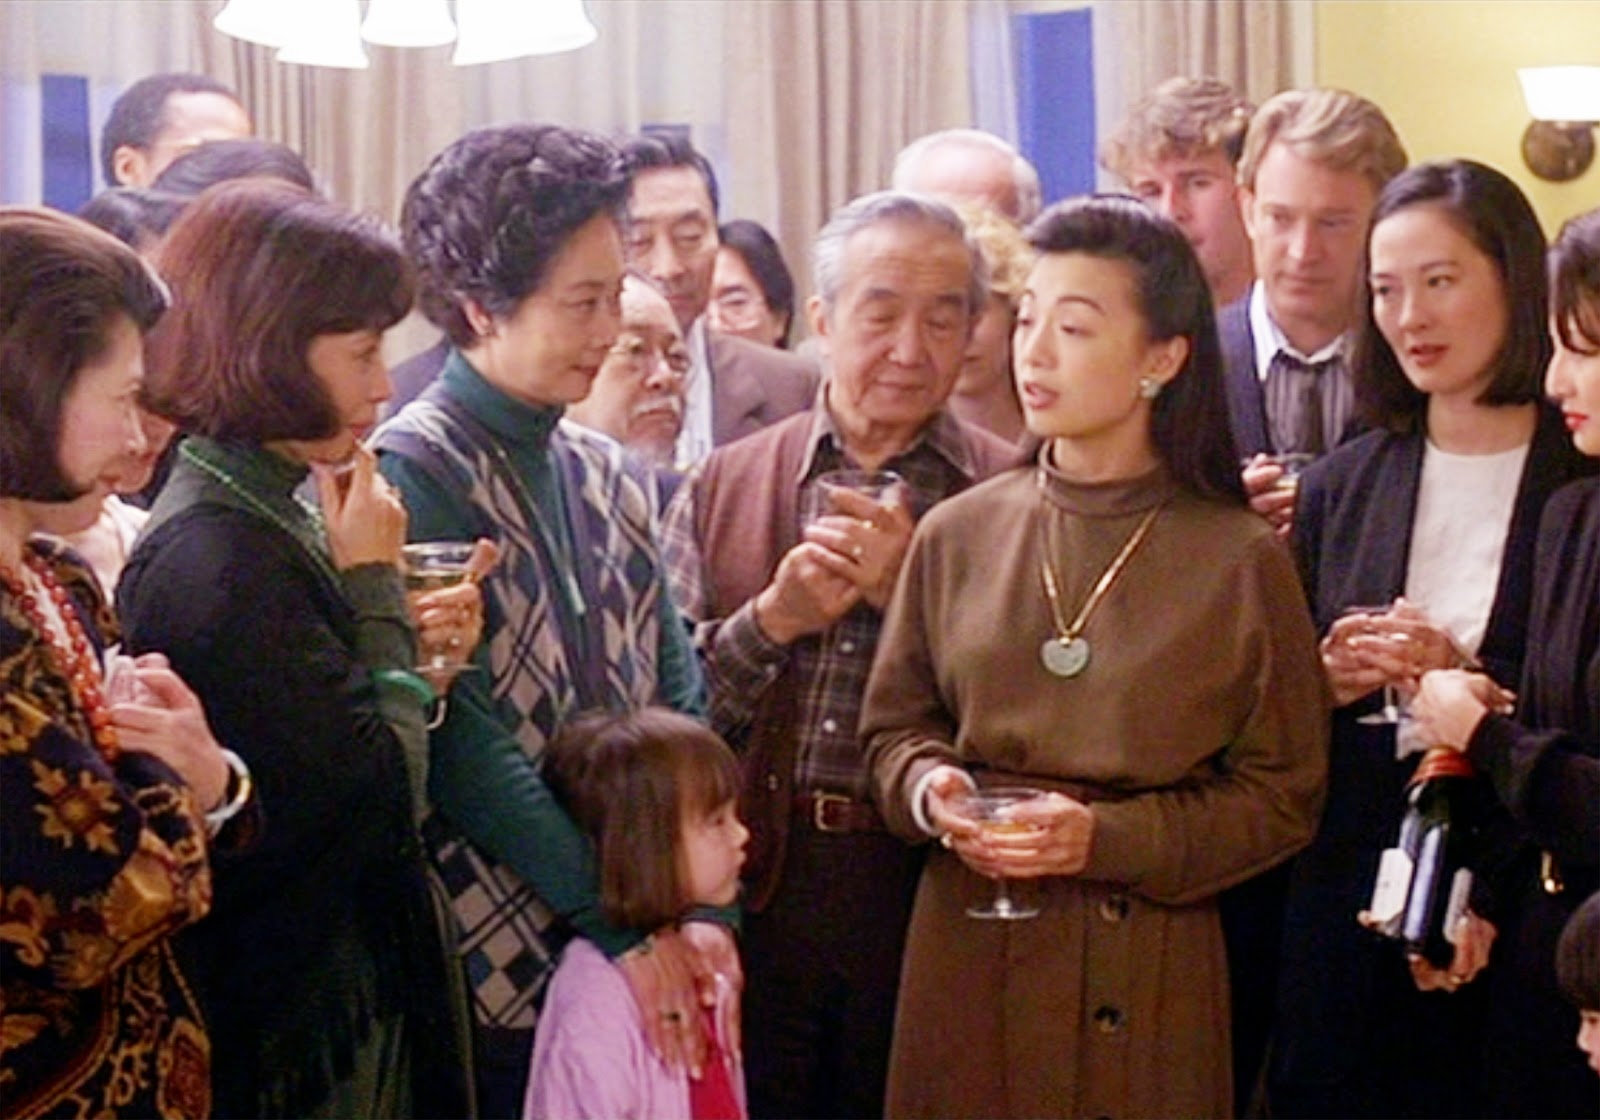 movie review the joy luck club is the story of family first movie review the joy luck club is the story of family first cultures second